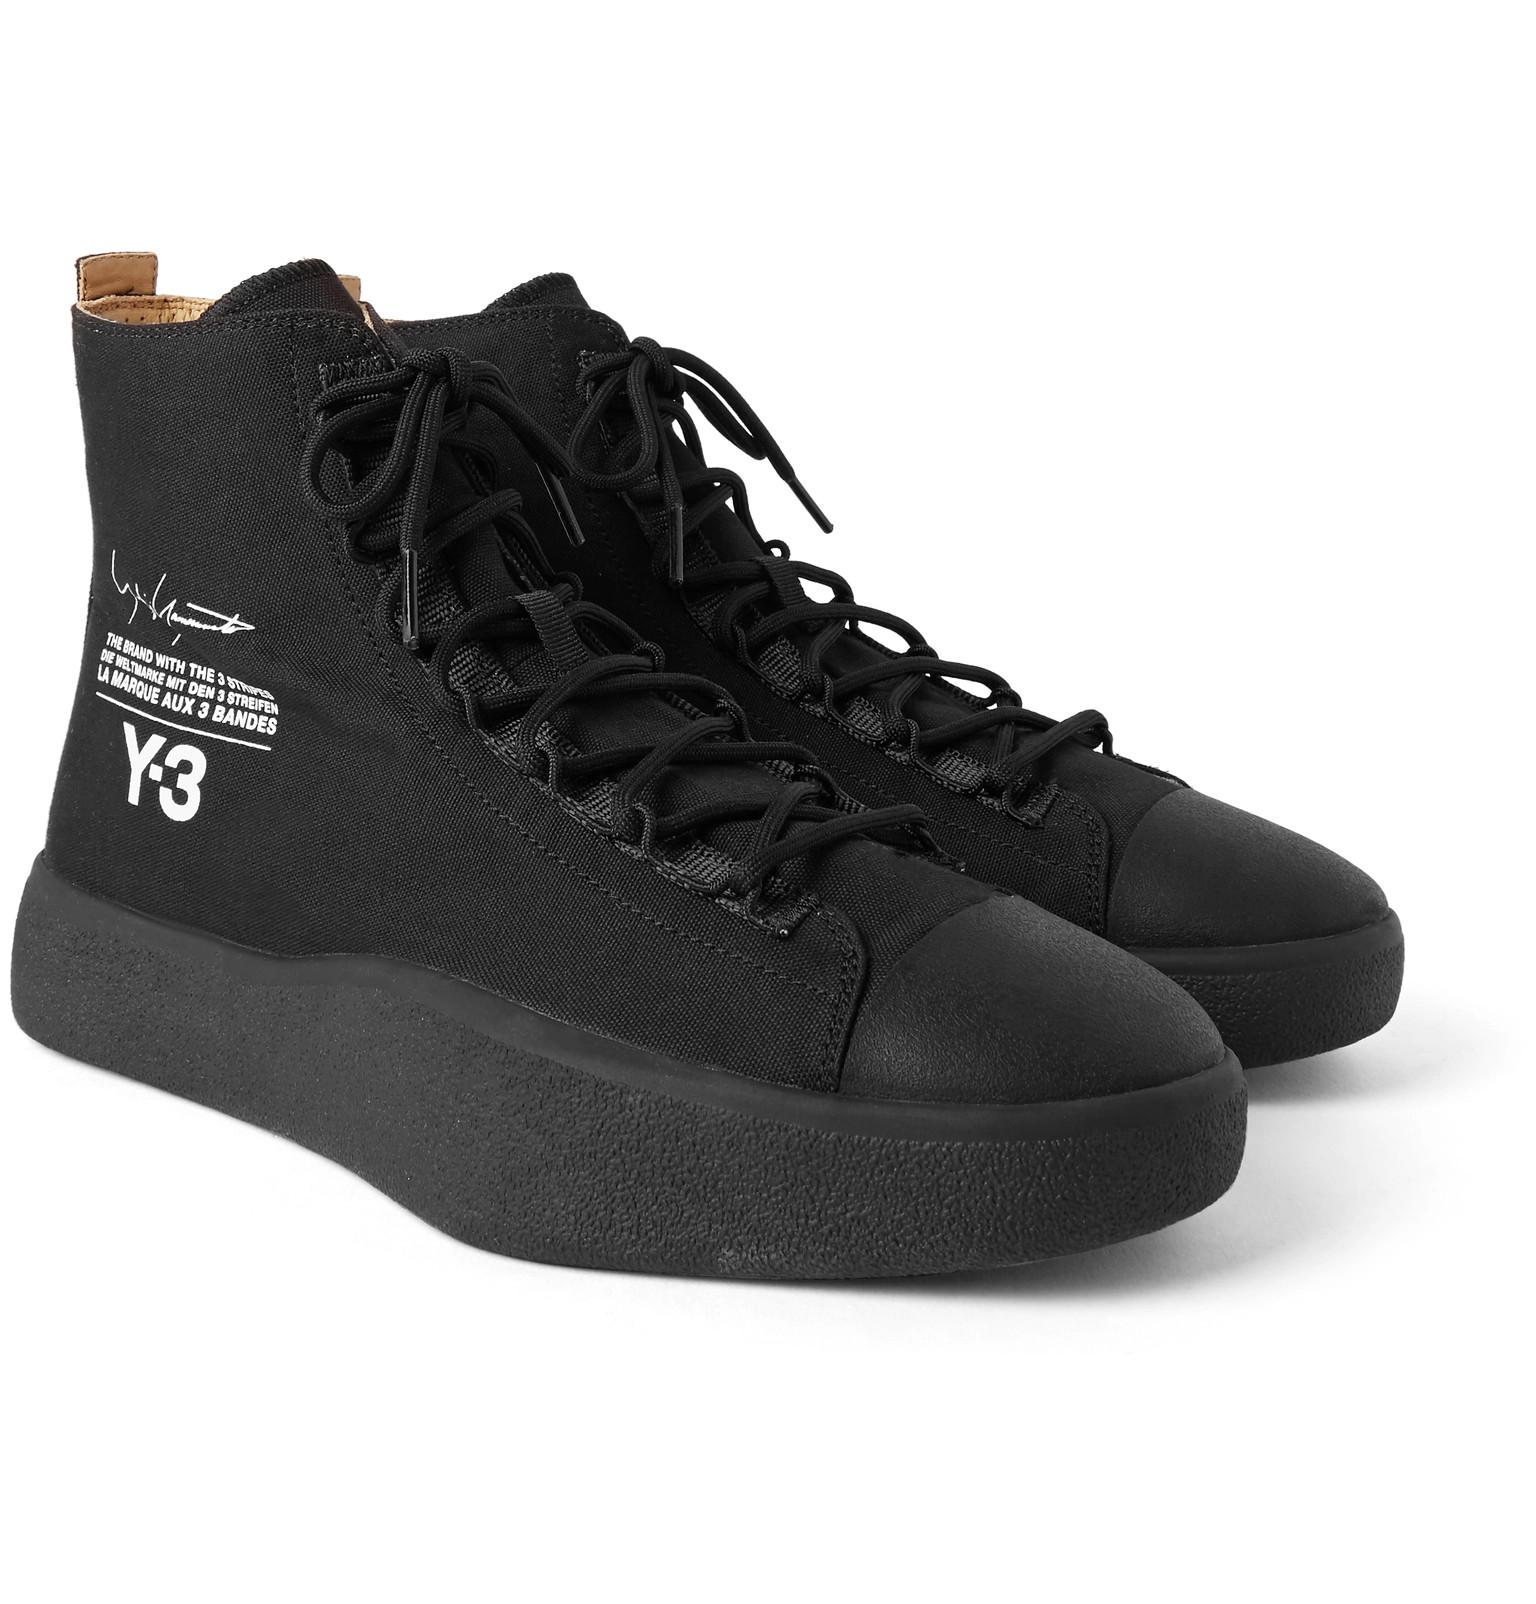 a83d8783d Y-3 Bashyo Printed Canvas High-top Sneakers in Black for Men - Lyst